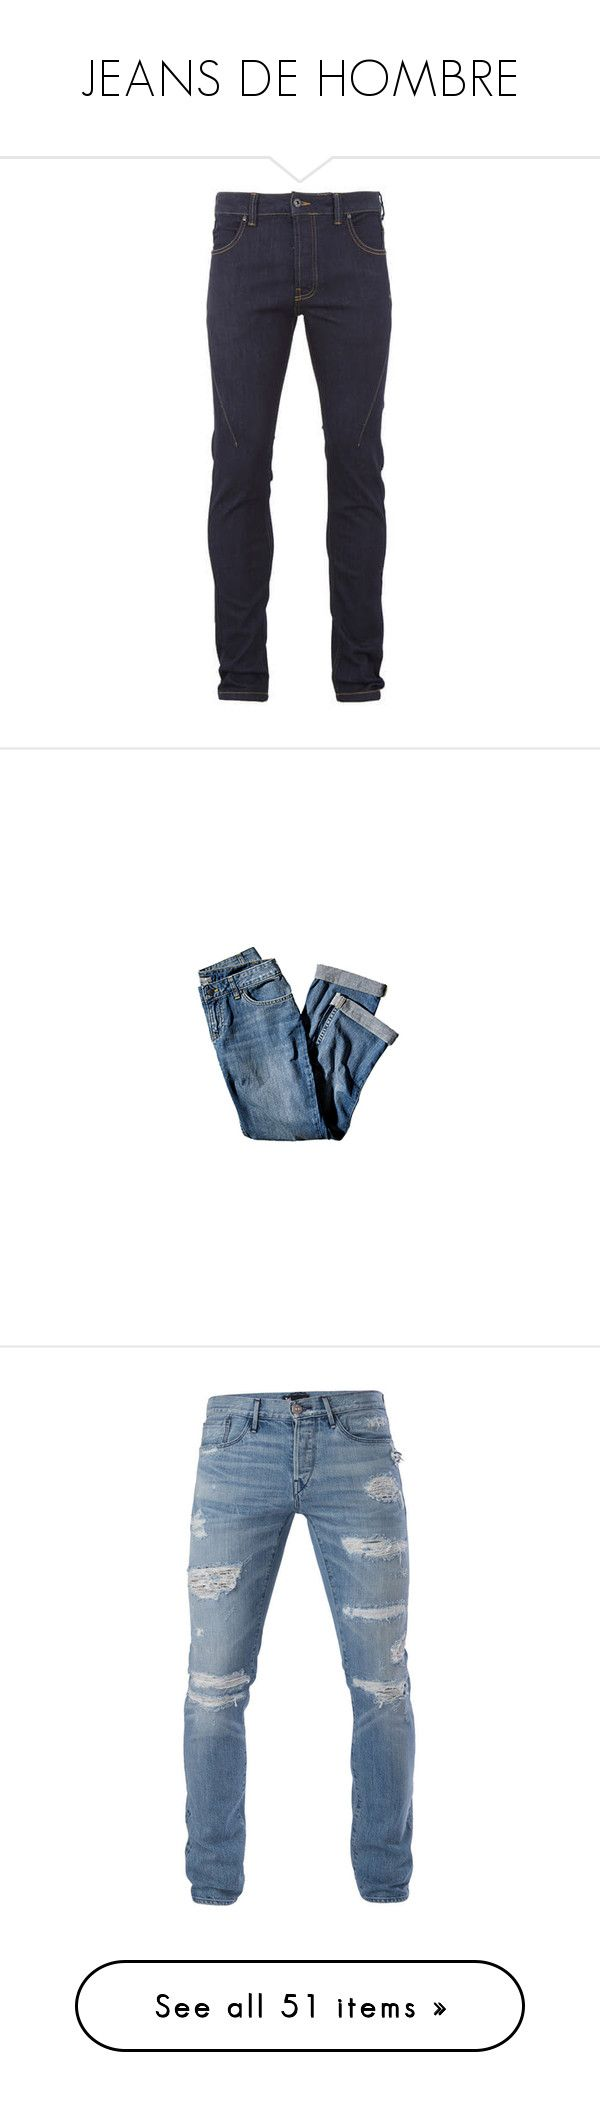 """JEANS DE HOMBRE"" by infinito01 ❤ liked on Polyvore featuring men's fashion, men's clothing, men's jeans, men, bottoms, male clothes, pantalons homme, pants, navy and mens jeans"